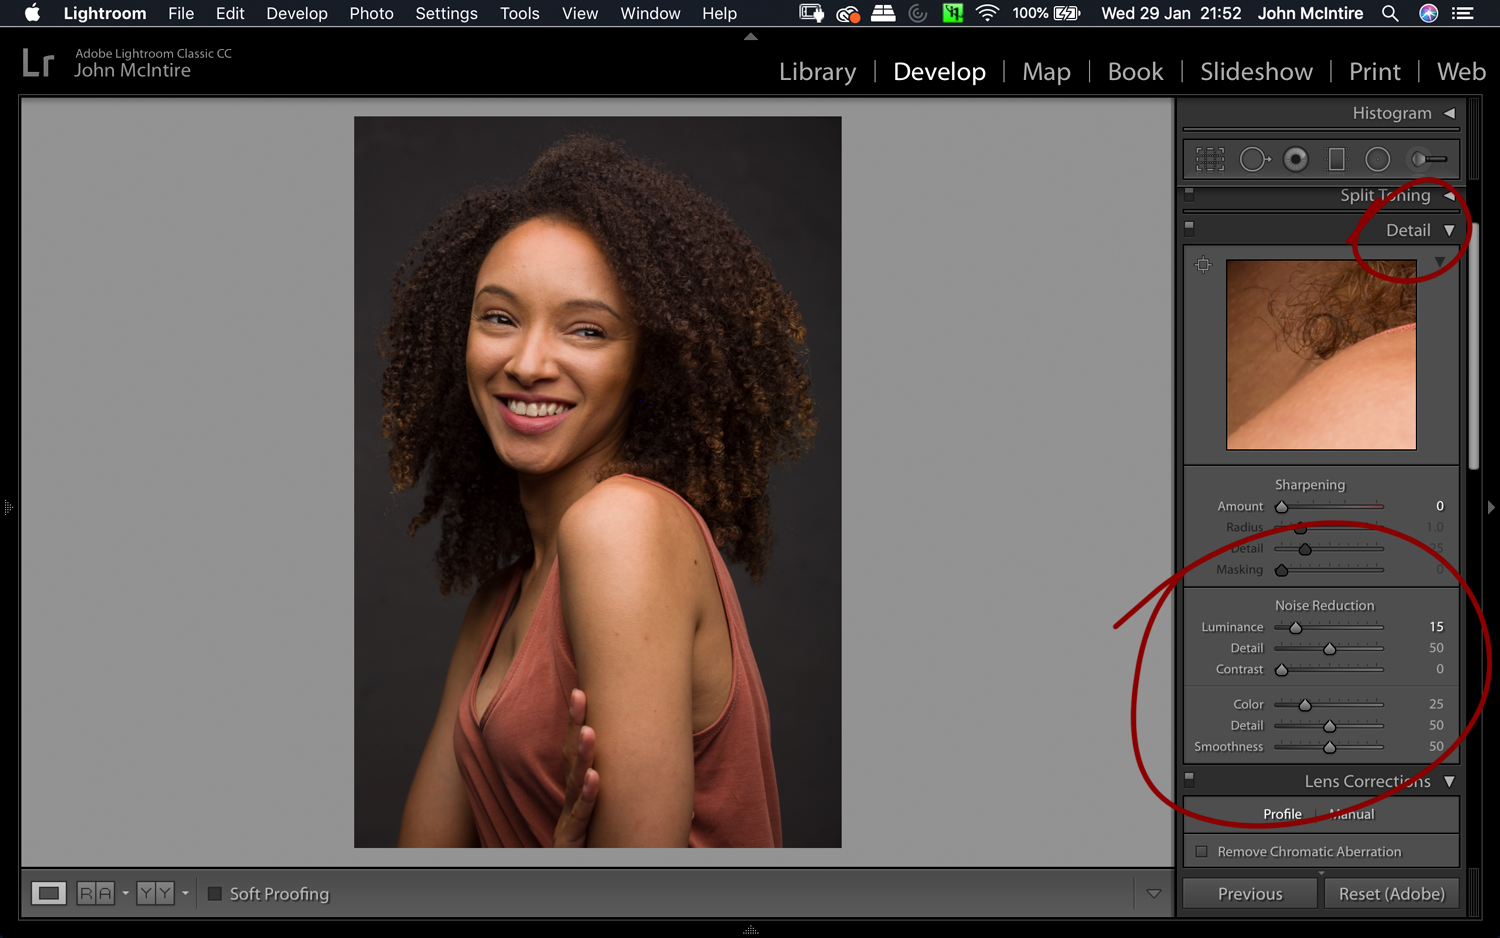 Things to do to every photo in Lightroom - Noise